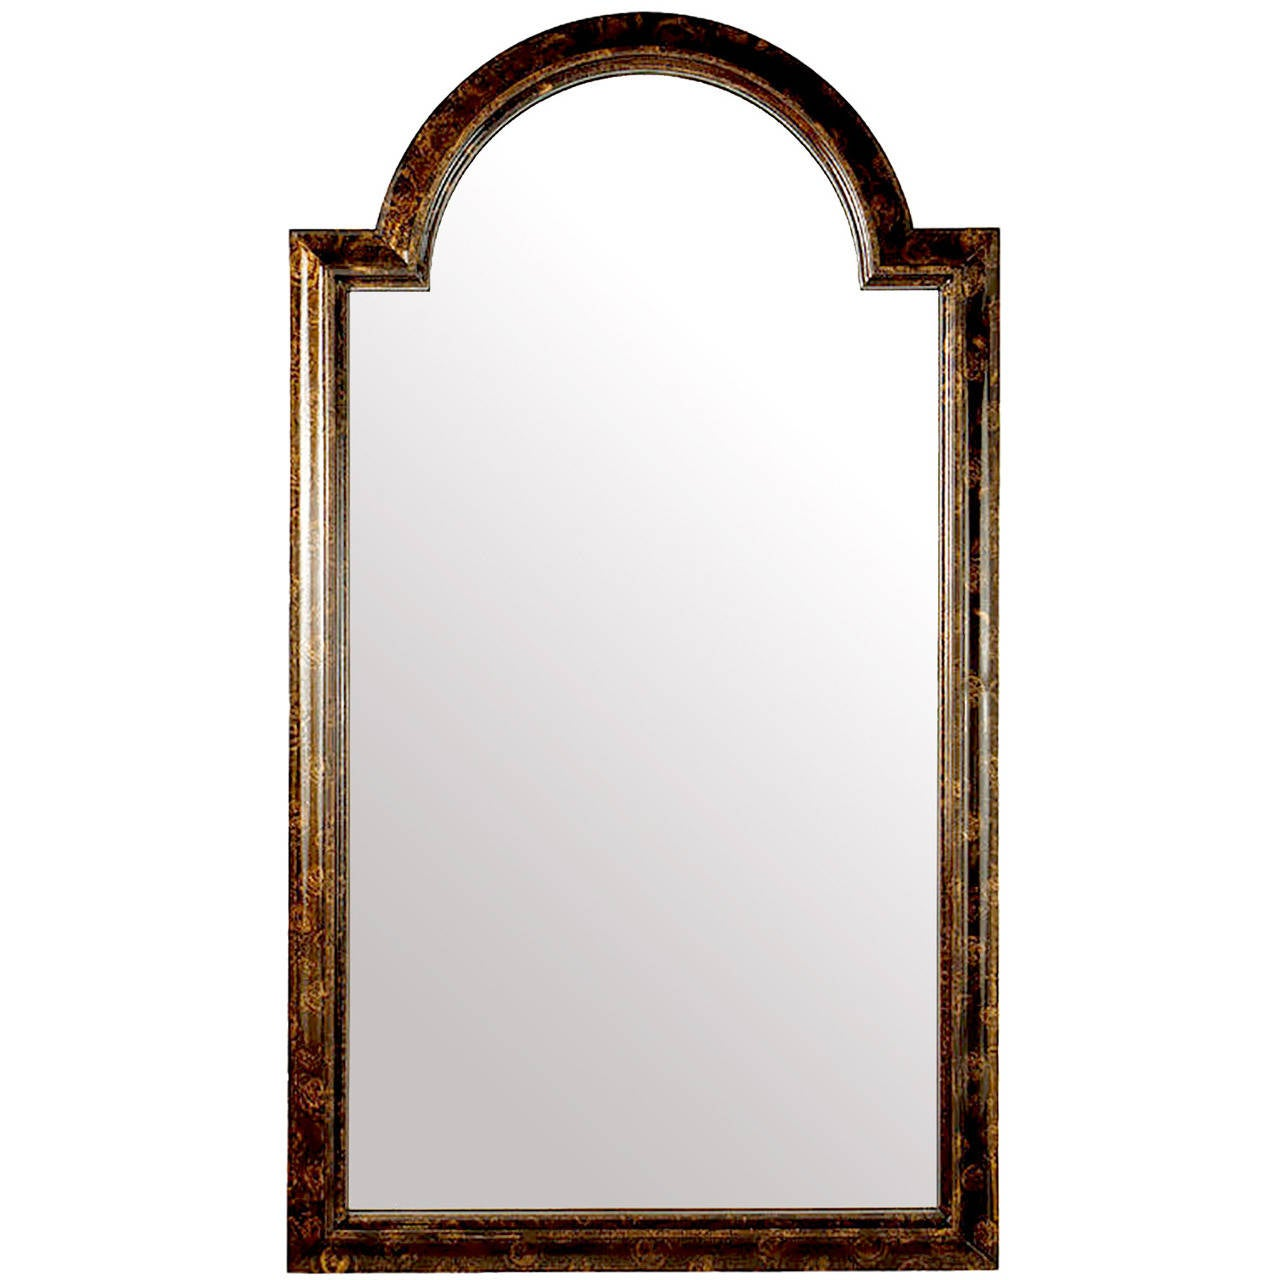 Arched gilt mirror at 1stdibs - Labarge Palladian Arch Top Mirror In Faux Tortoise Finish 1